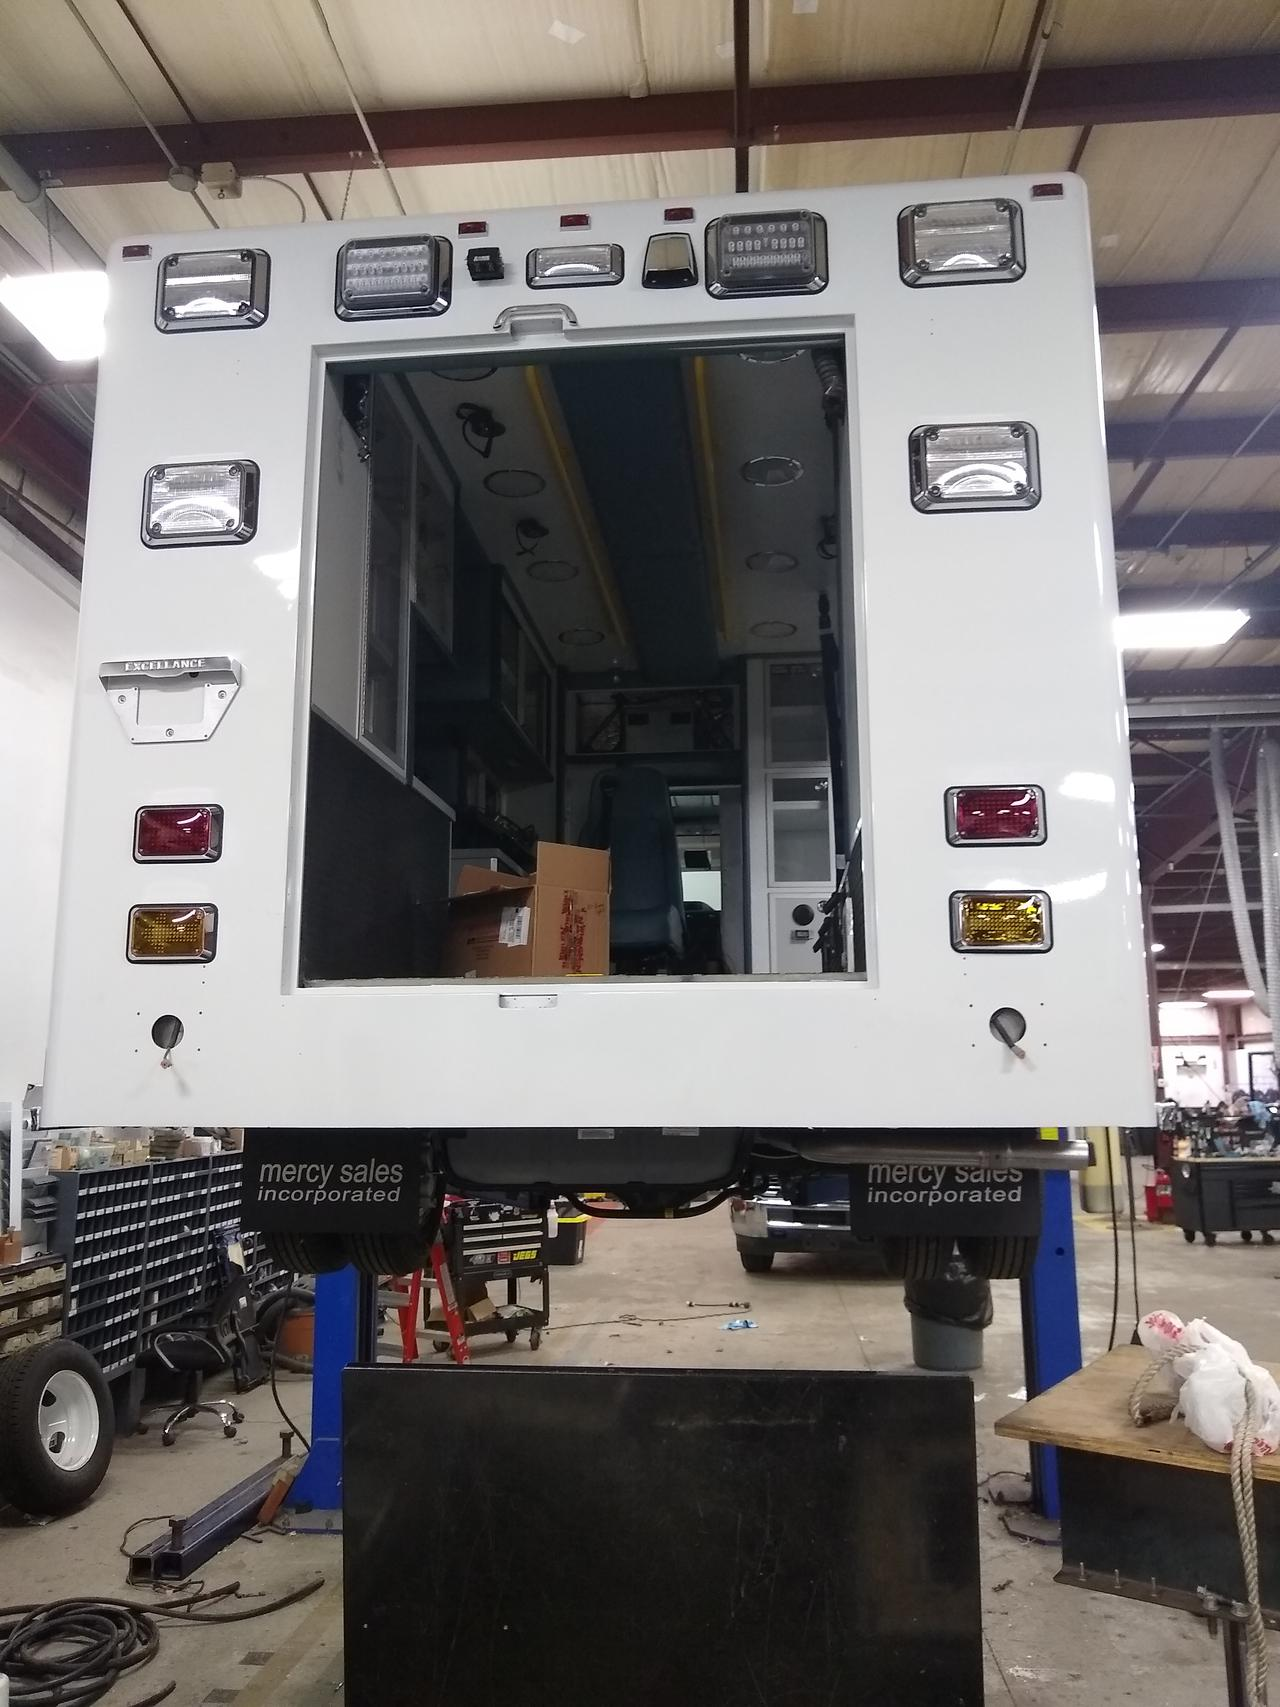 Our Mercy Sales and Service re-chassis service.